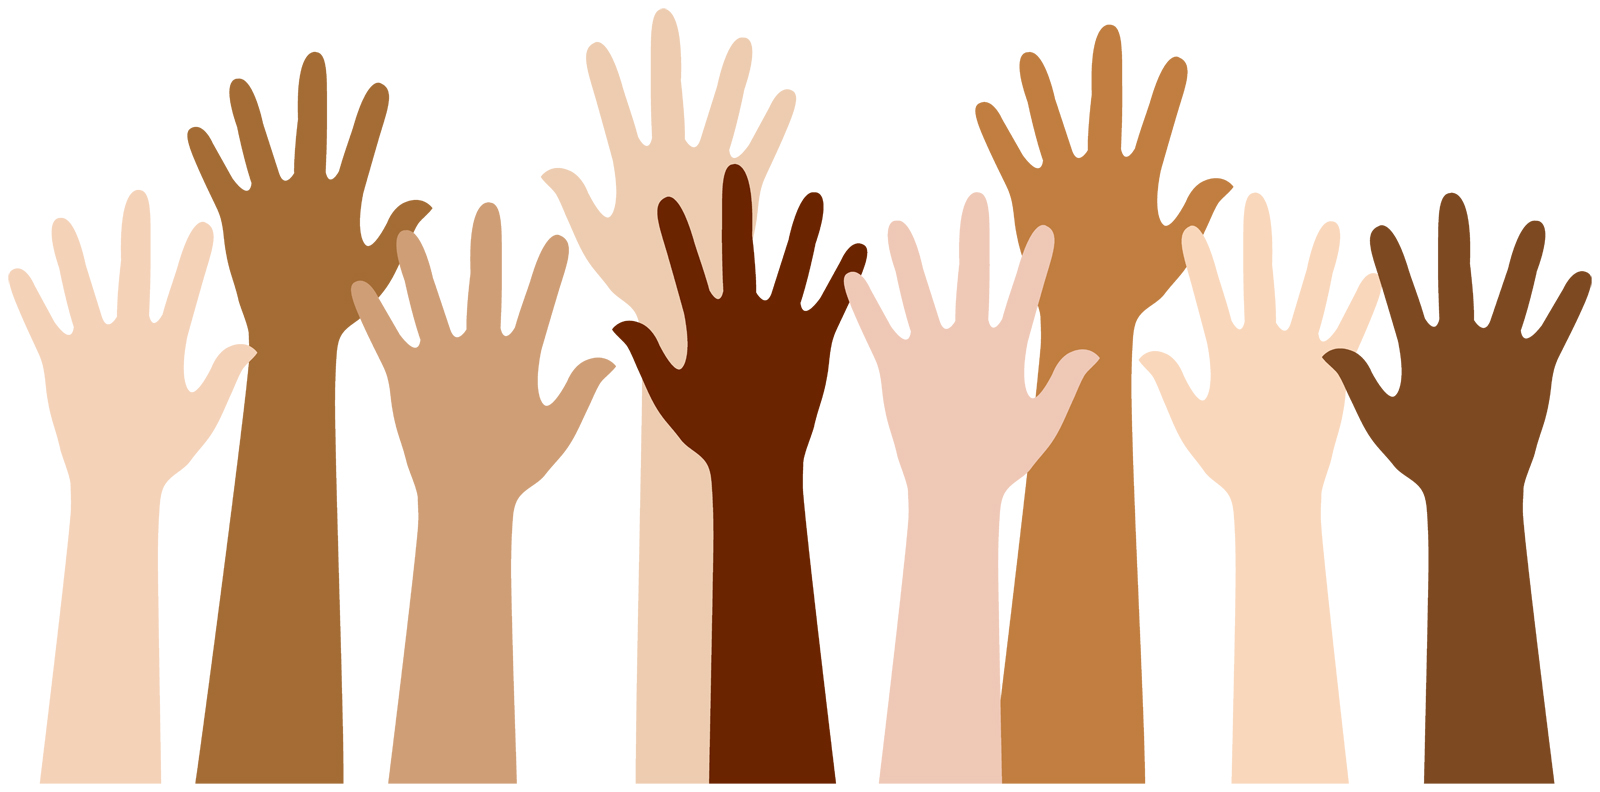 many hands with varying skin tones